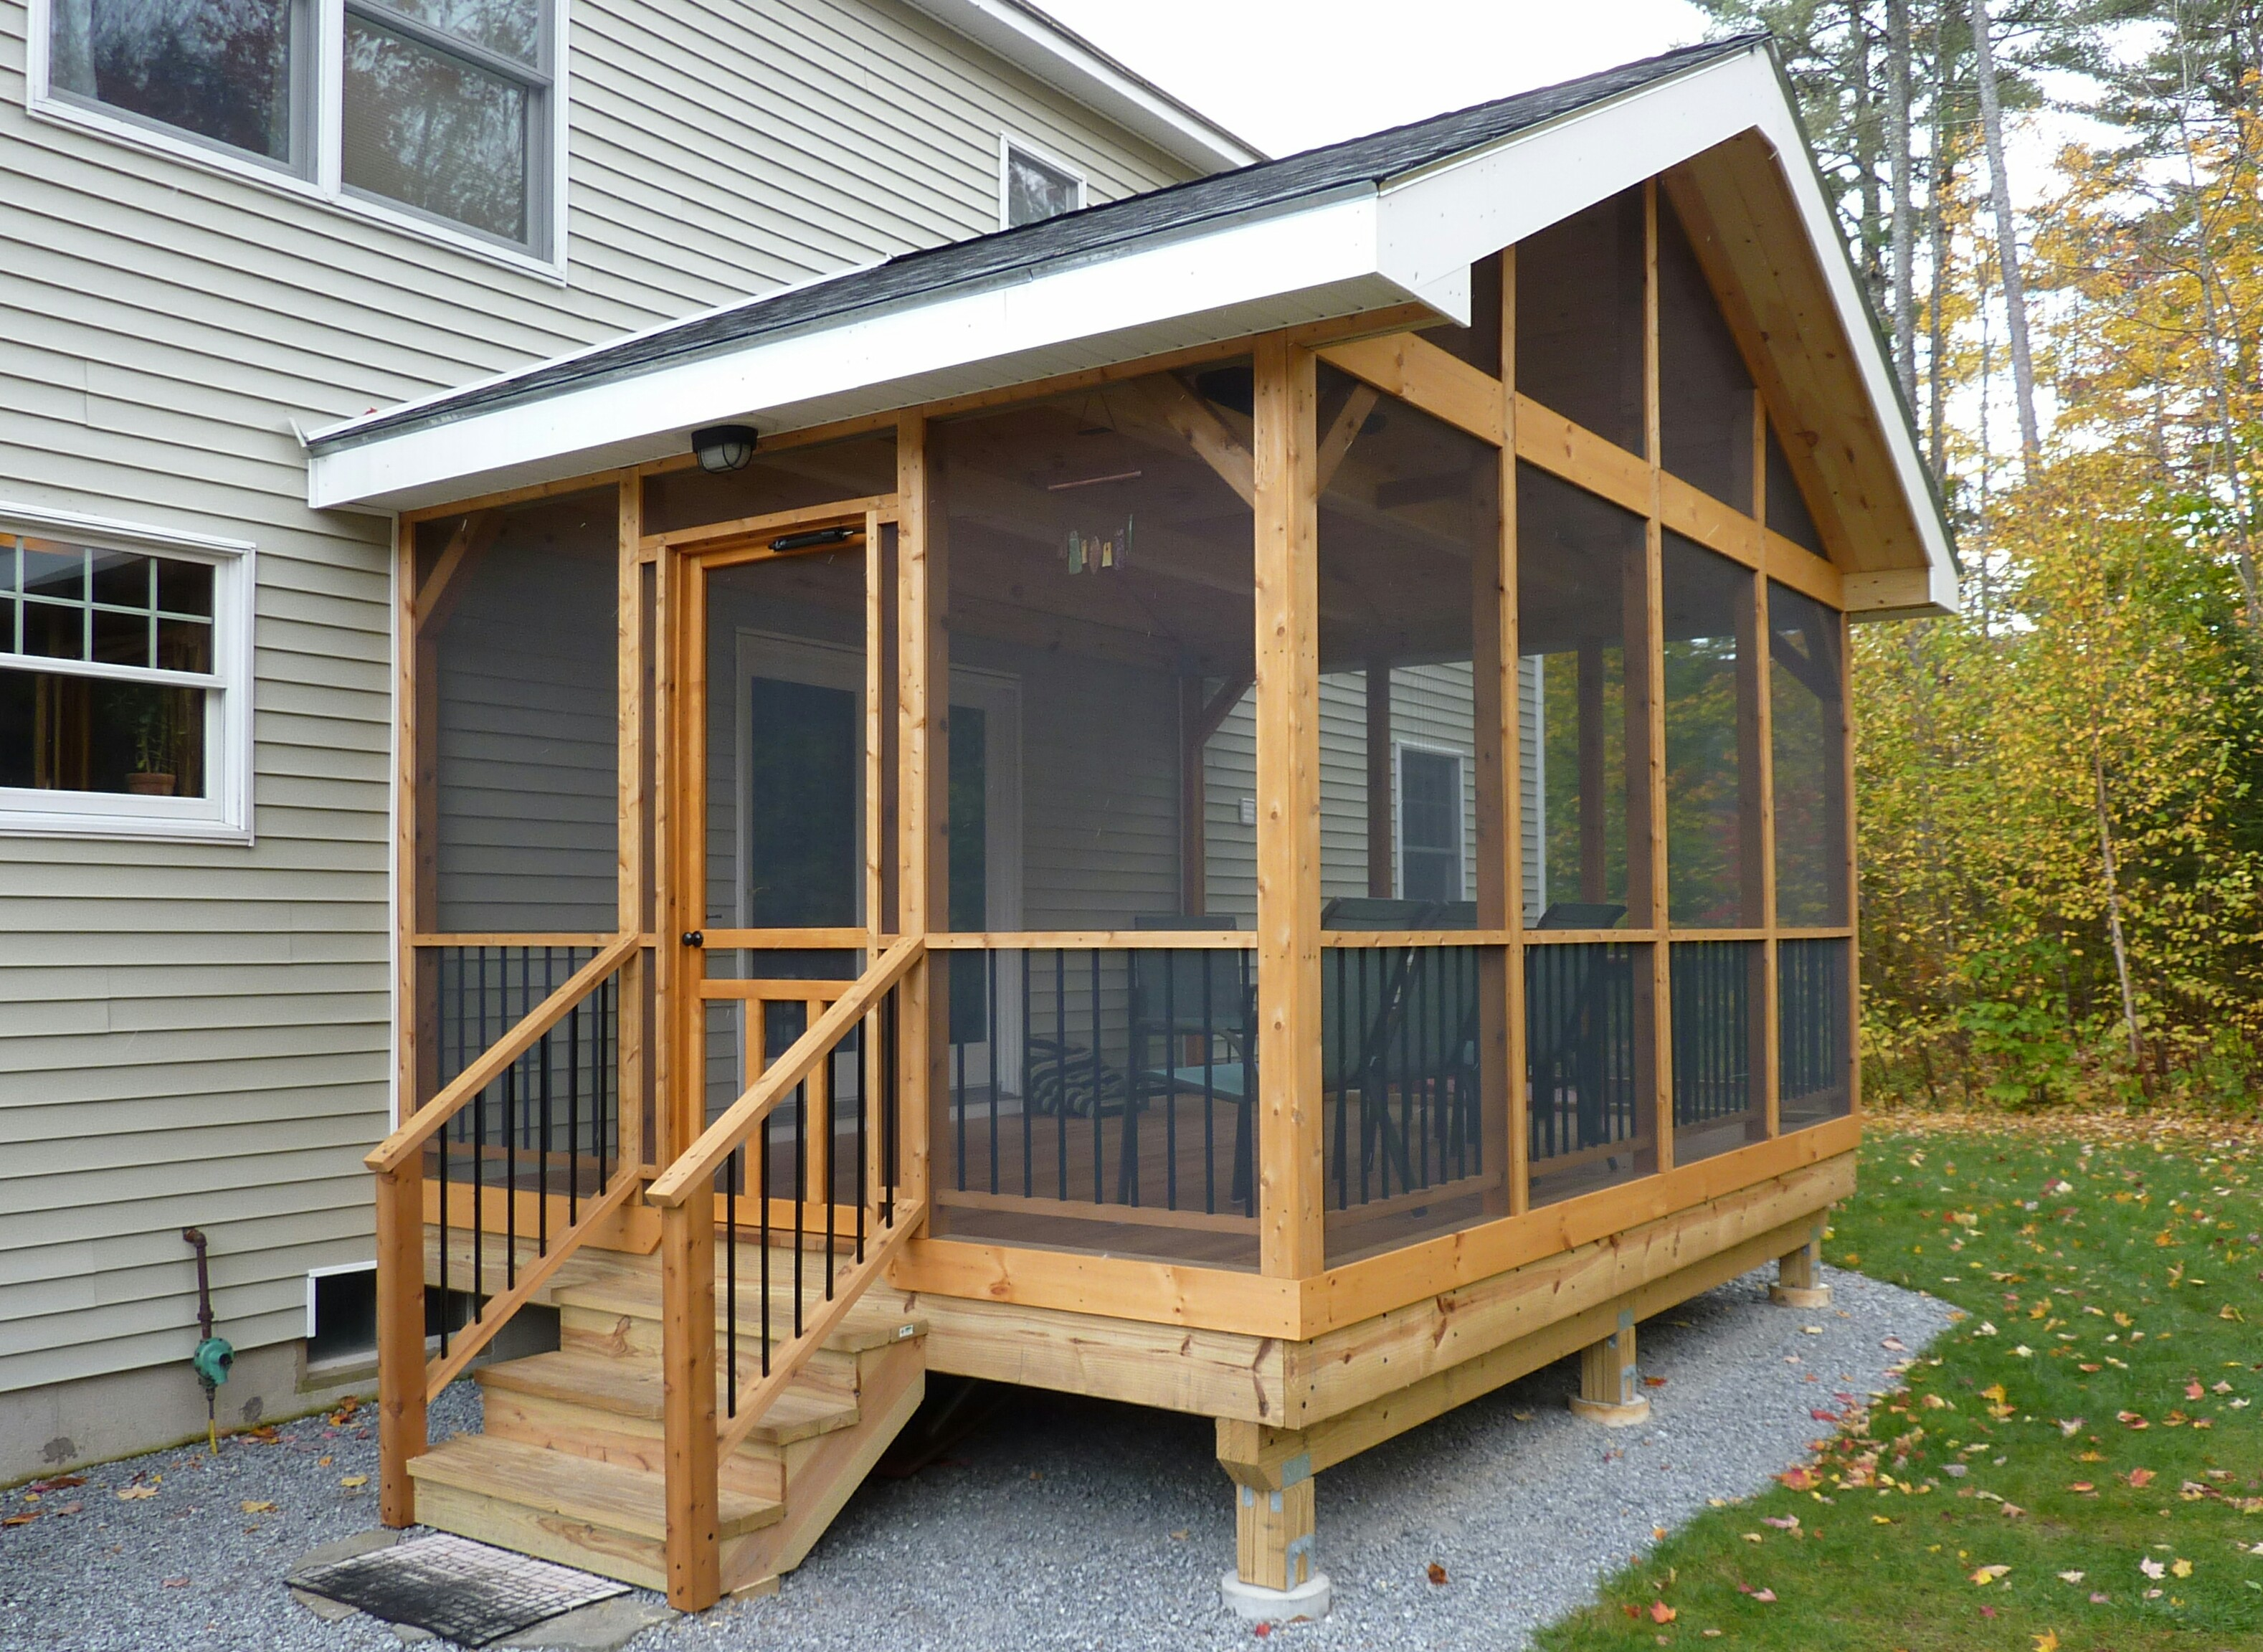 15 DIY Screened In Porch-Learn how to screen in a porch ... Small Mobile Home Porch Plans Diy on deck plans, diy screened in back porch ideas, mobile home covered porch plans, diy decks and porches, double wide mobile home floor plans,